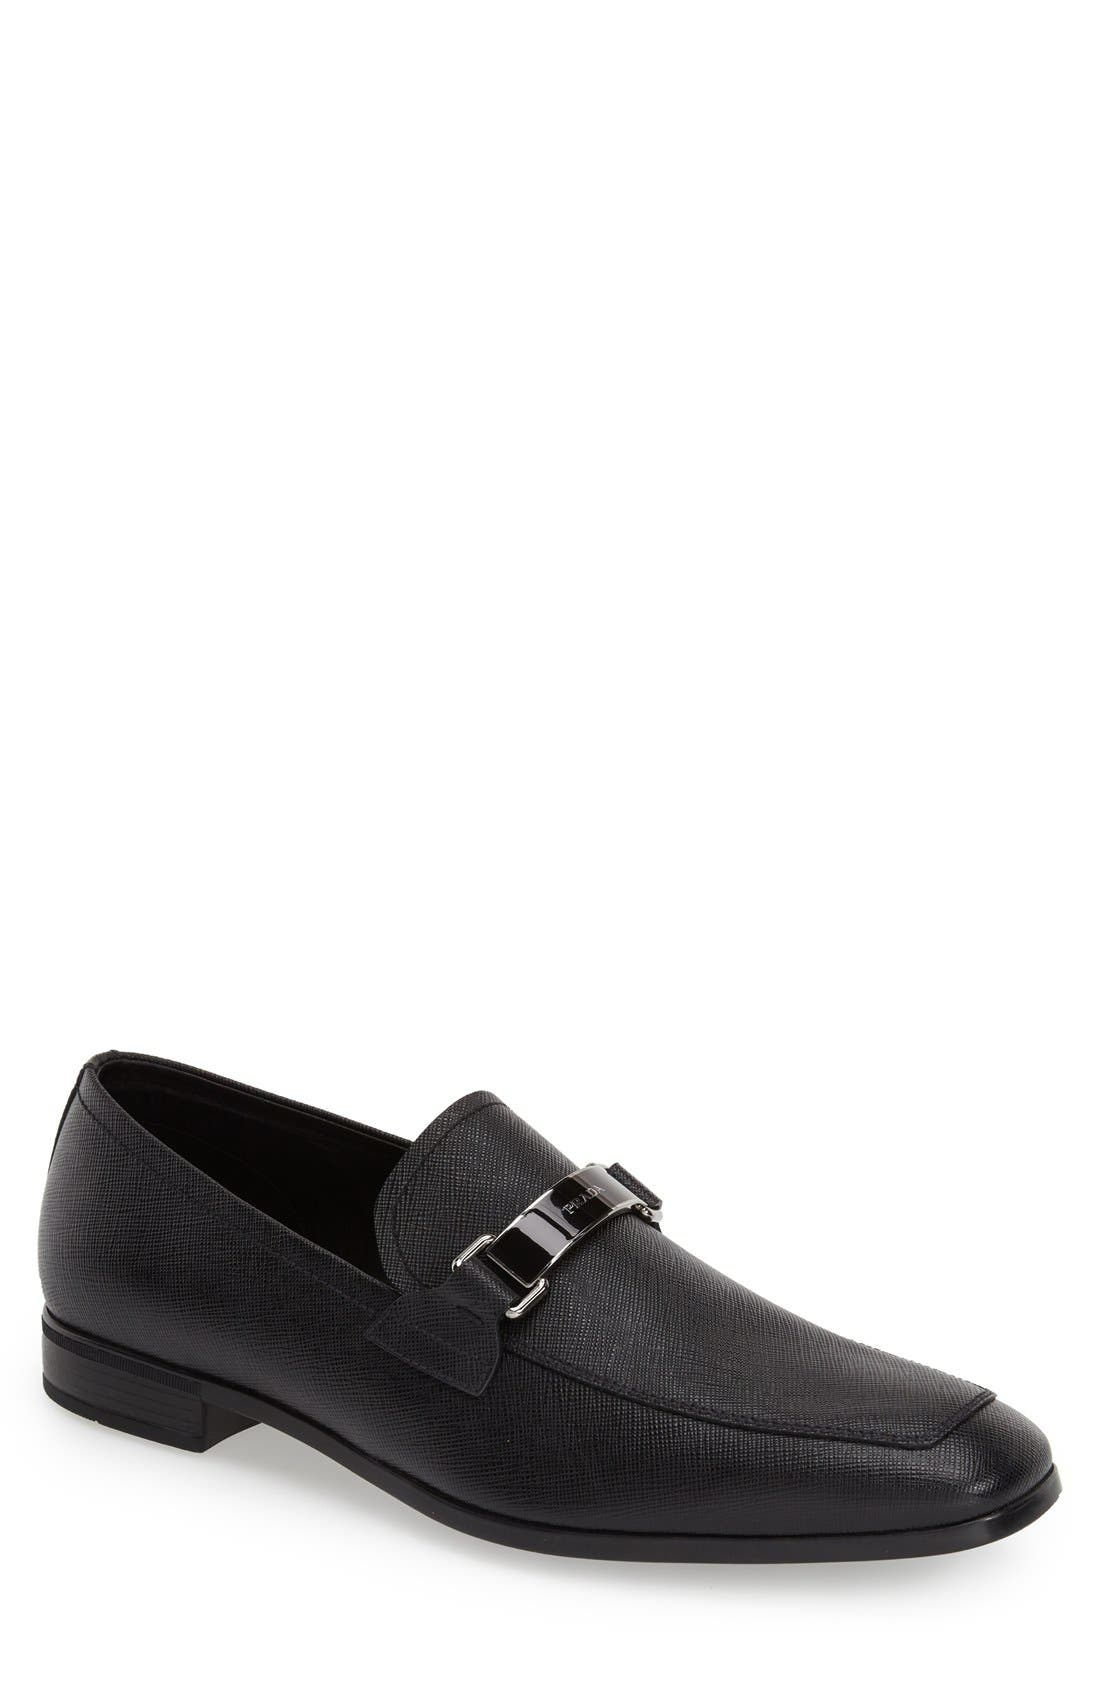 Prada Saffiano Leather Bit Loafer (Men)